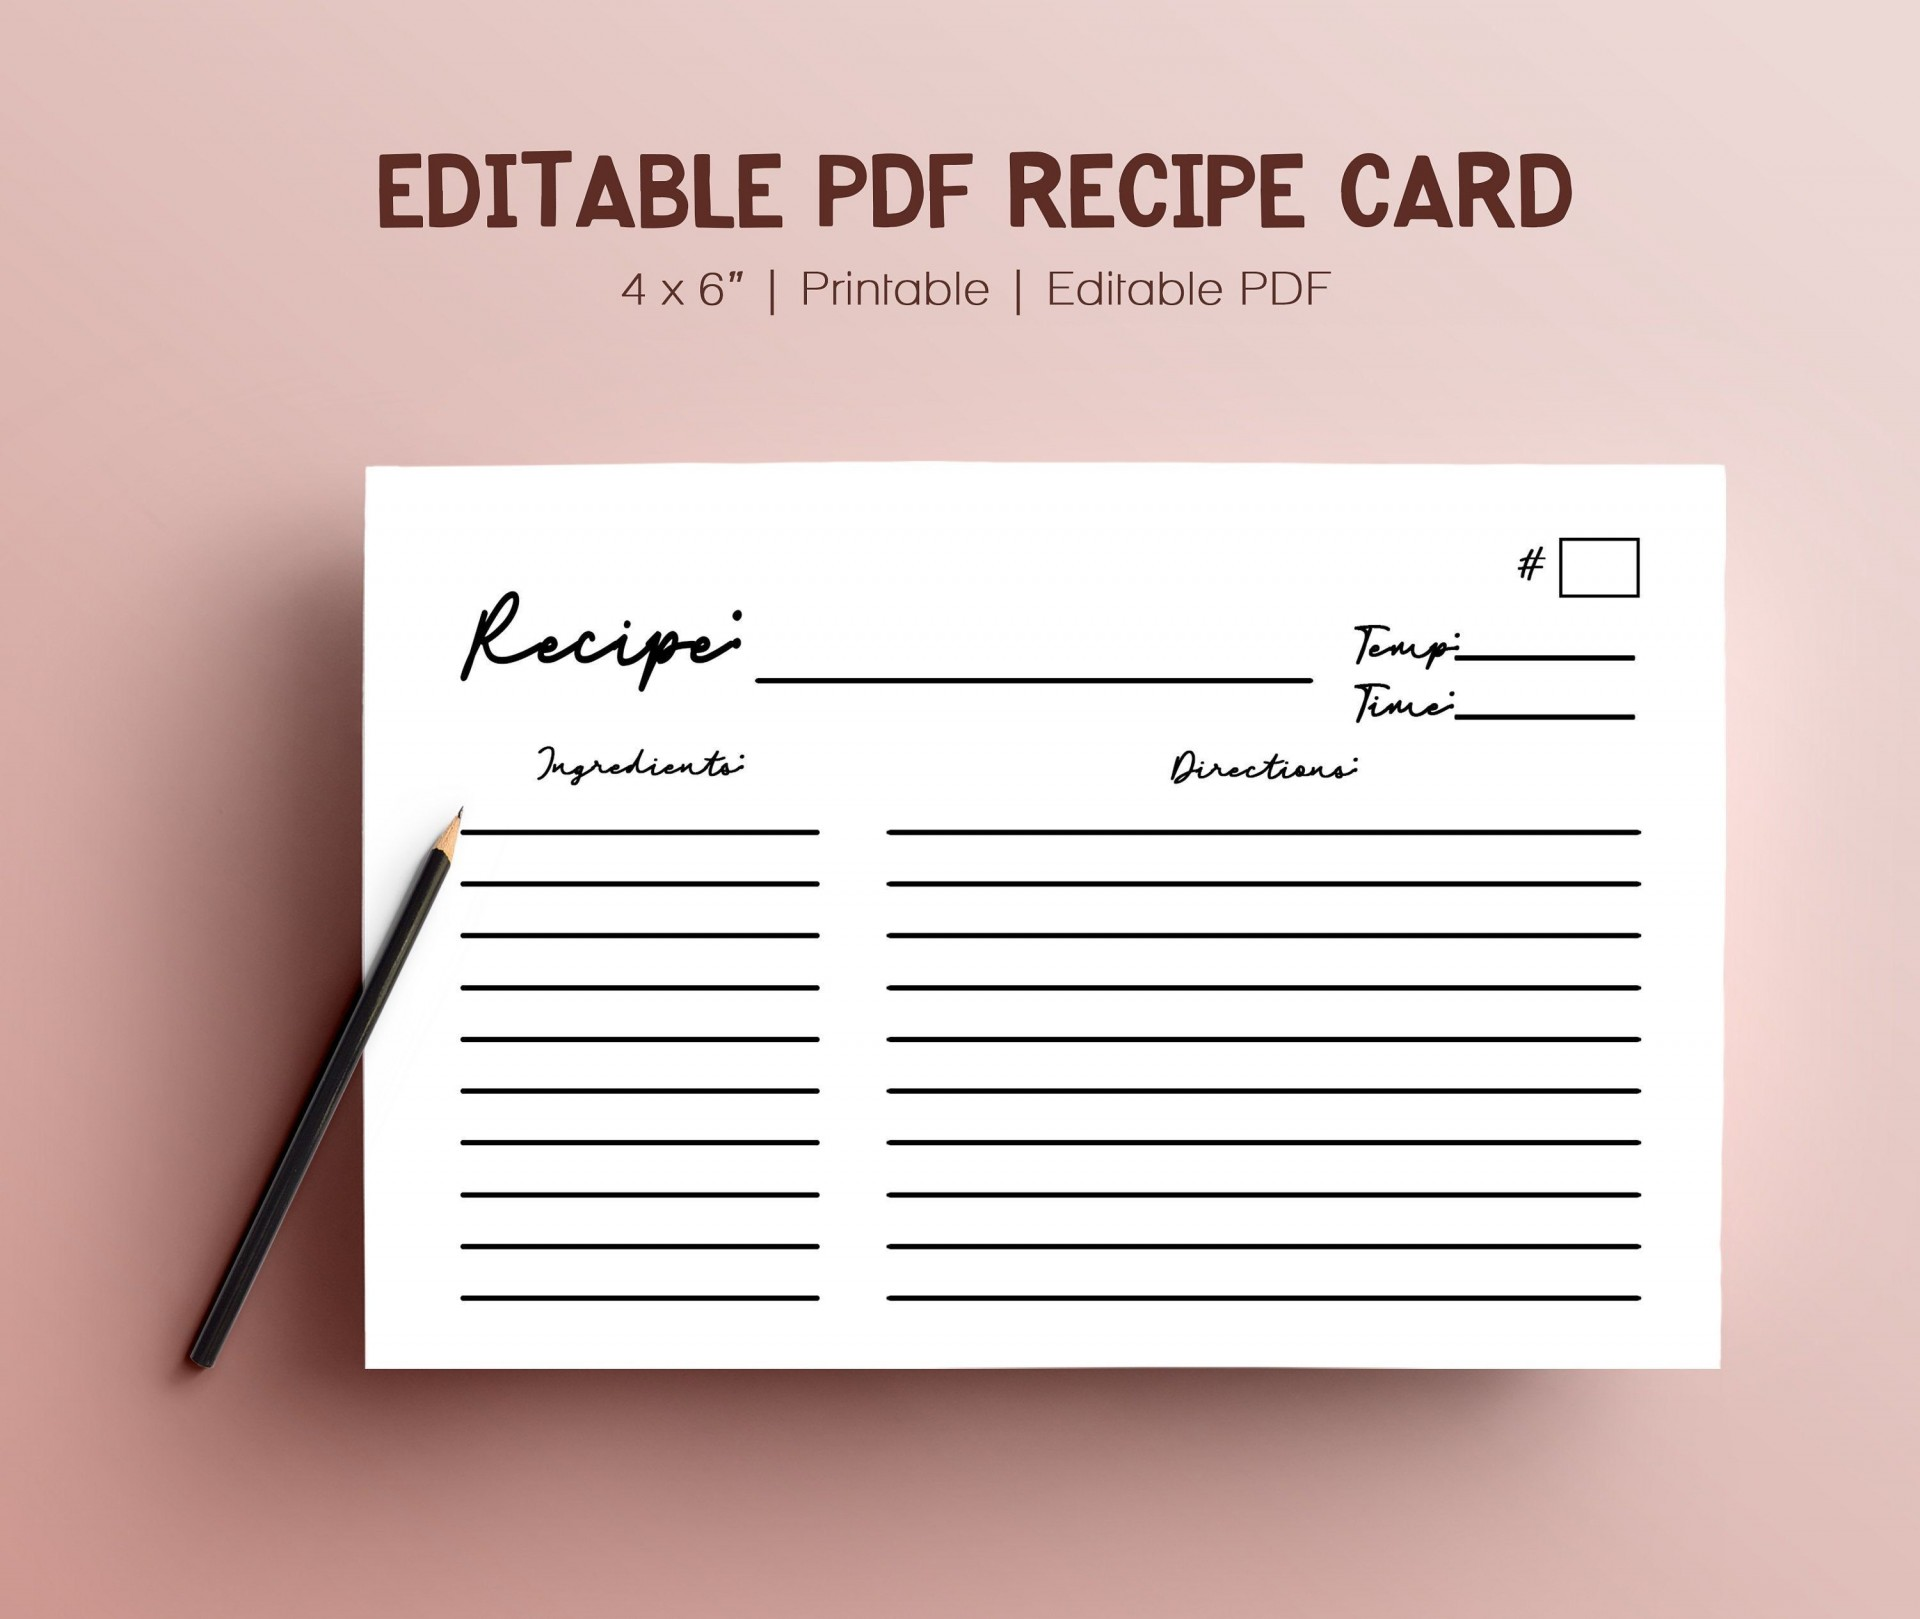 003 Exceptional Recipe Card Template For Word Example  Printable Blank Fillable1920